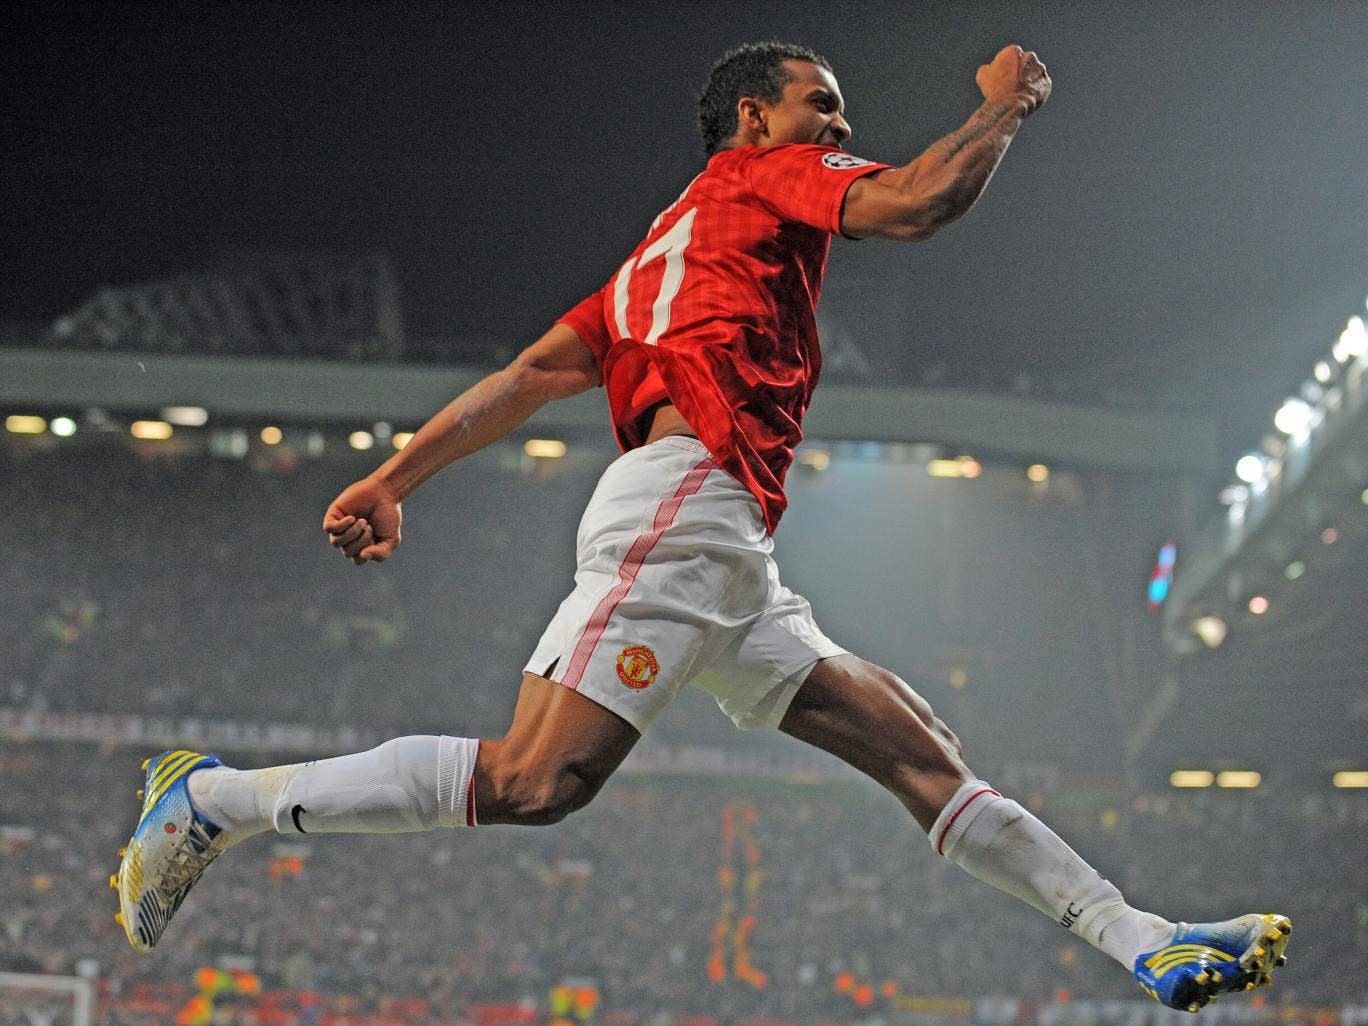 <p>Nani (10 appearances, 1 goal):</p> Either brilliant or poor and seems like his manager has lost patience. A single goal in a below-par return from a major attacking threat. 6